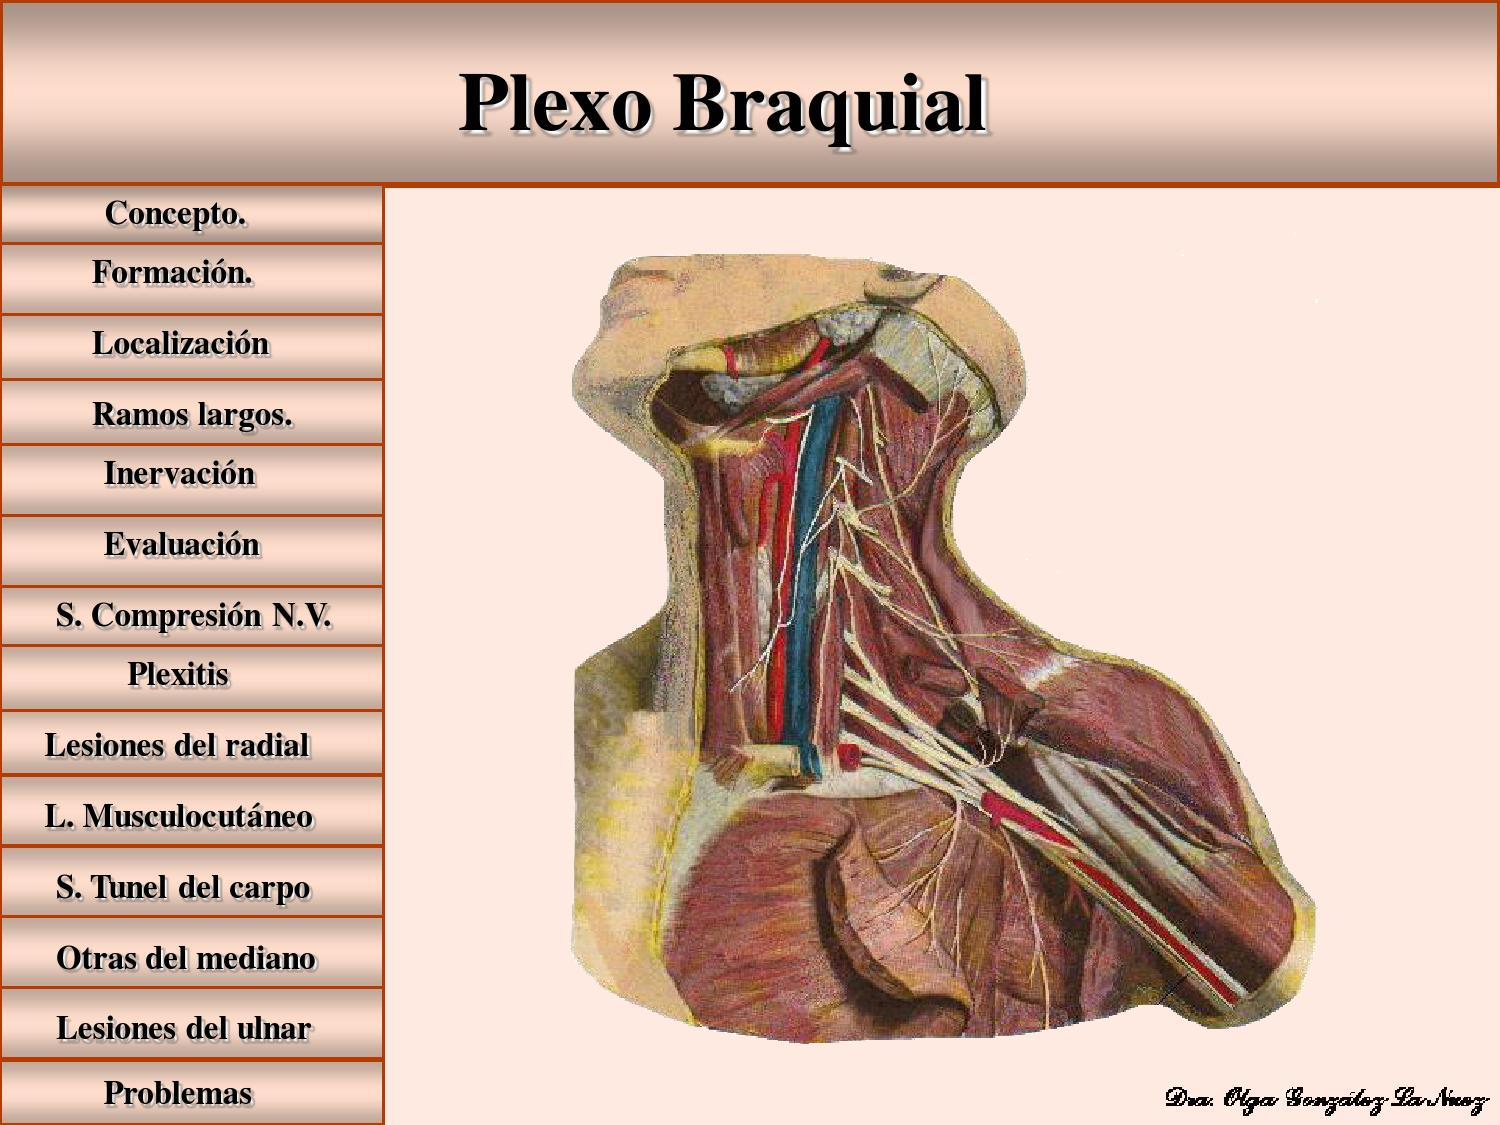 Plexo braquial by Diana - issuu